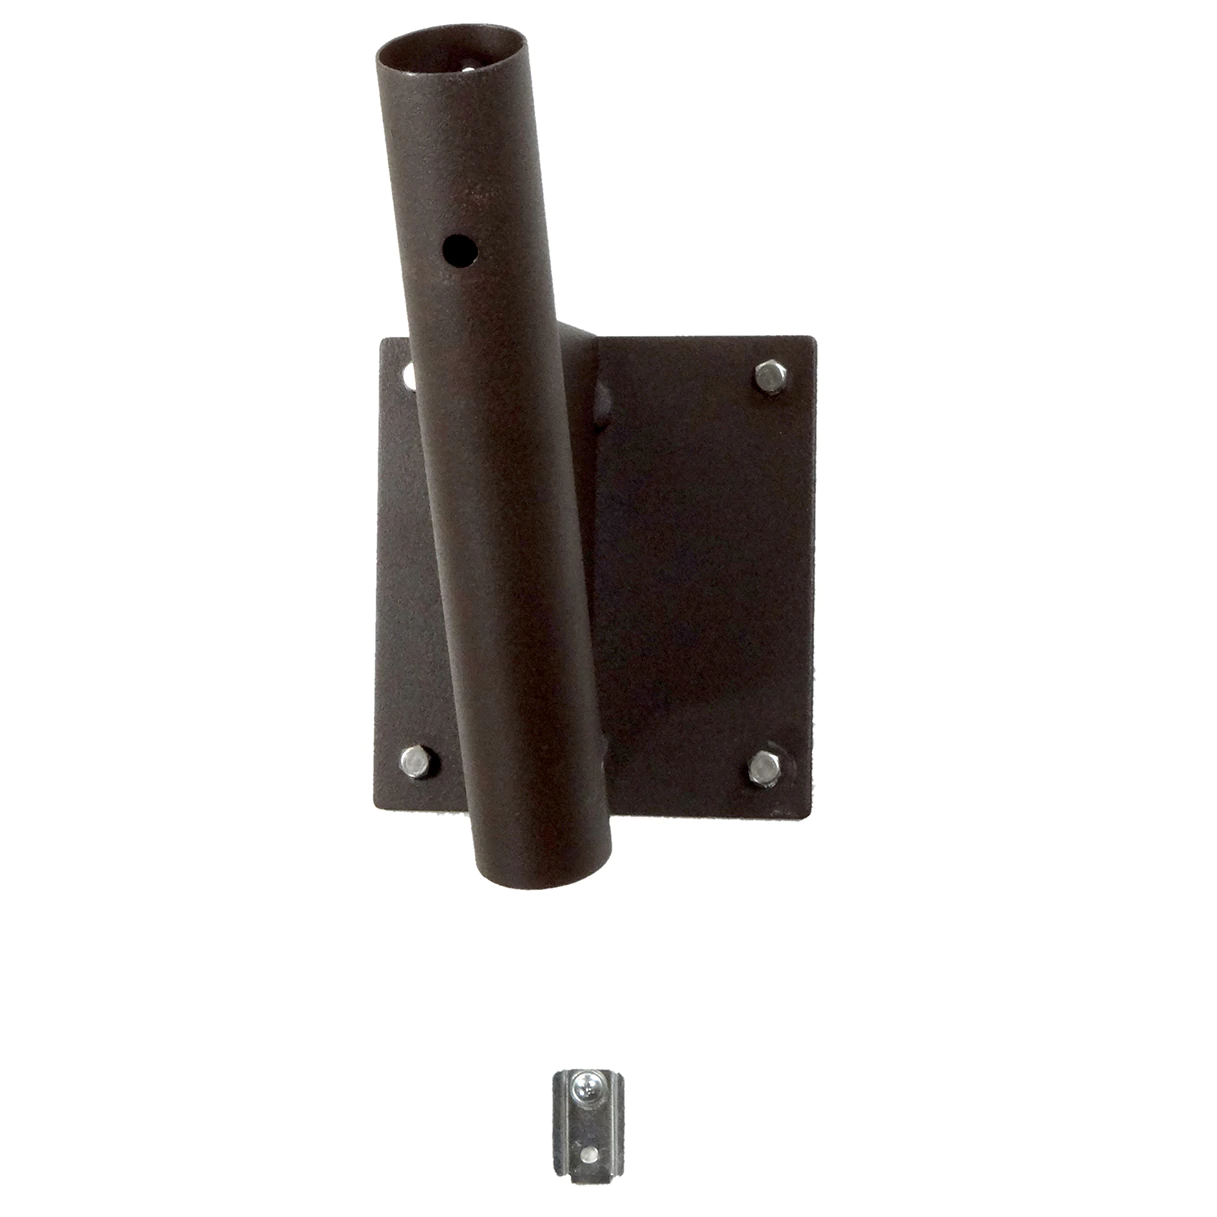 24 Inch Textured Brown Shrouded Outdoor Wall Mount